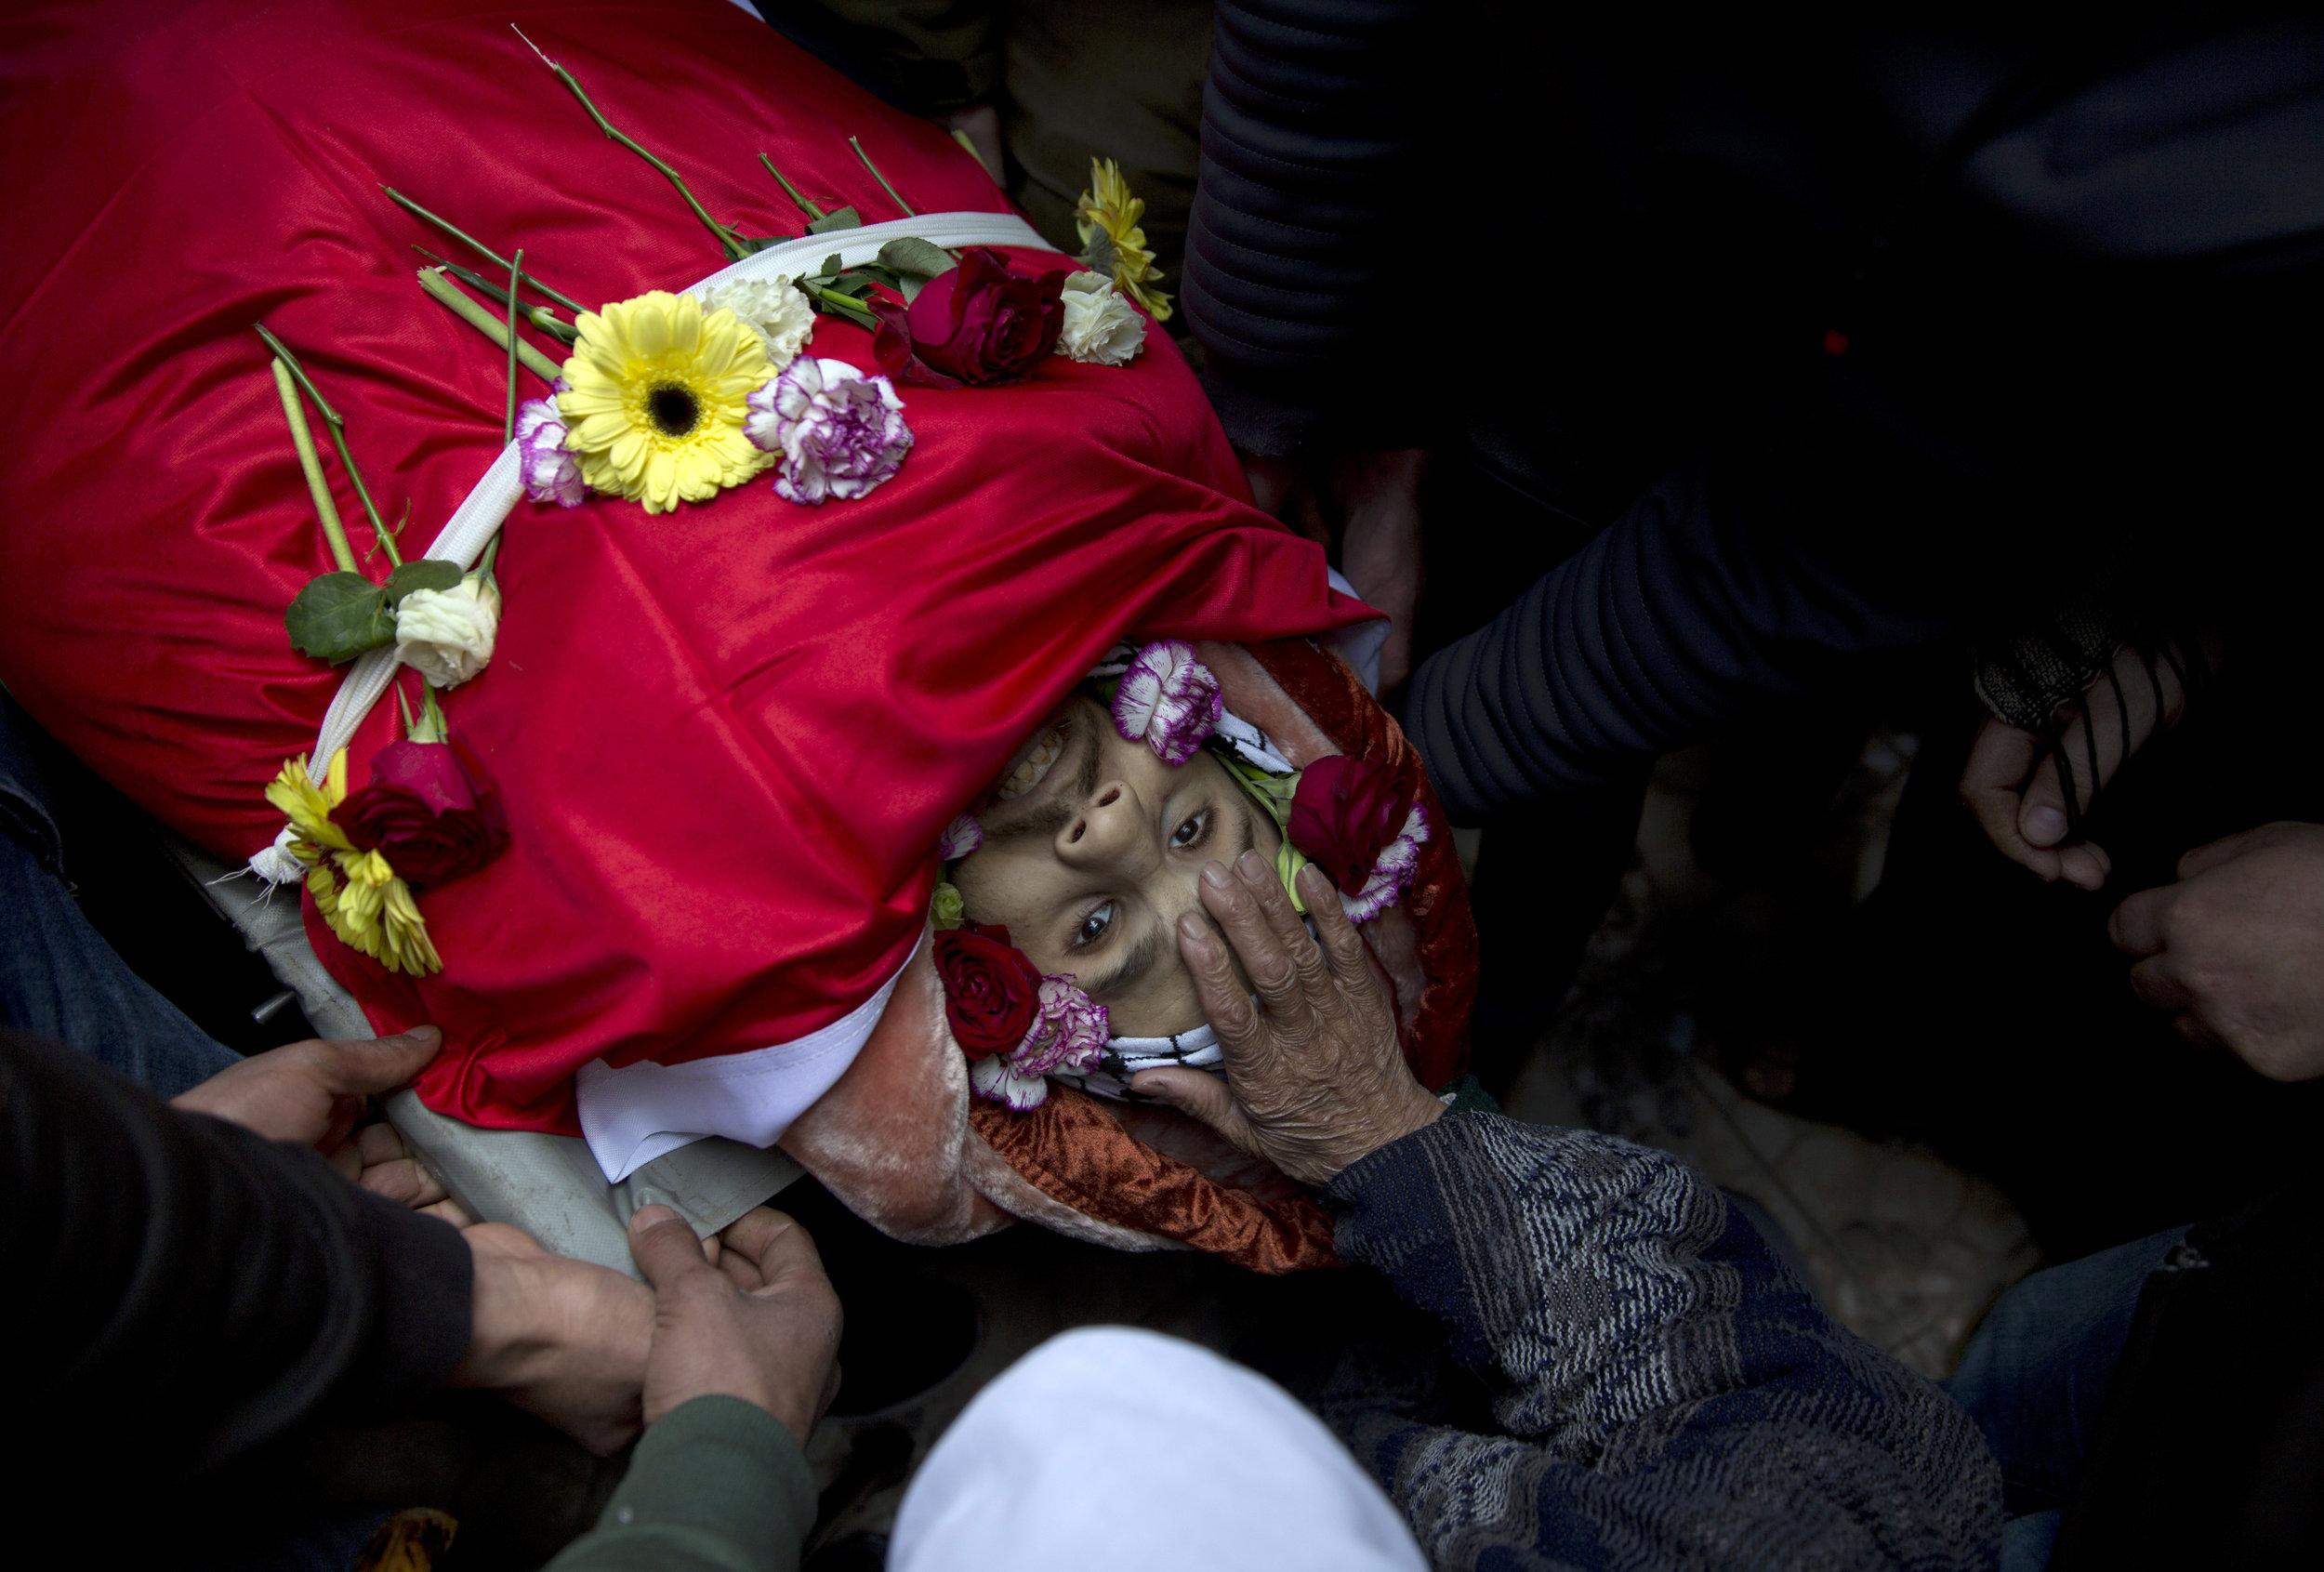 Mourners take a farewell look at the body of Mohammad Edwan, 23, who was shot and killed by Israeli troops, in the West Bank Refugee camp of Qalandia, near Ramallah, Tuesday, April 2, 2019. (AP Photo/Nasser Nasser)